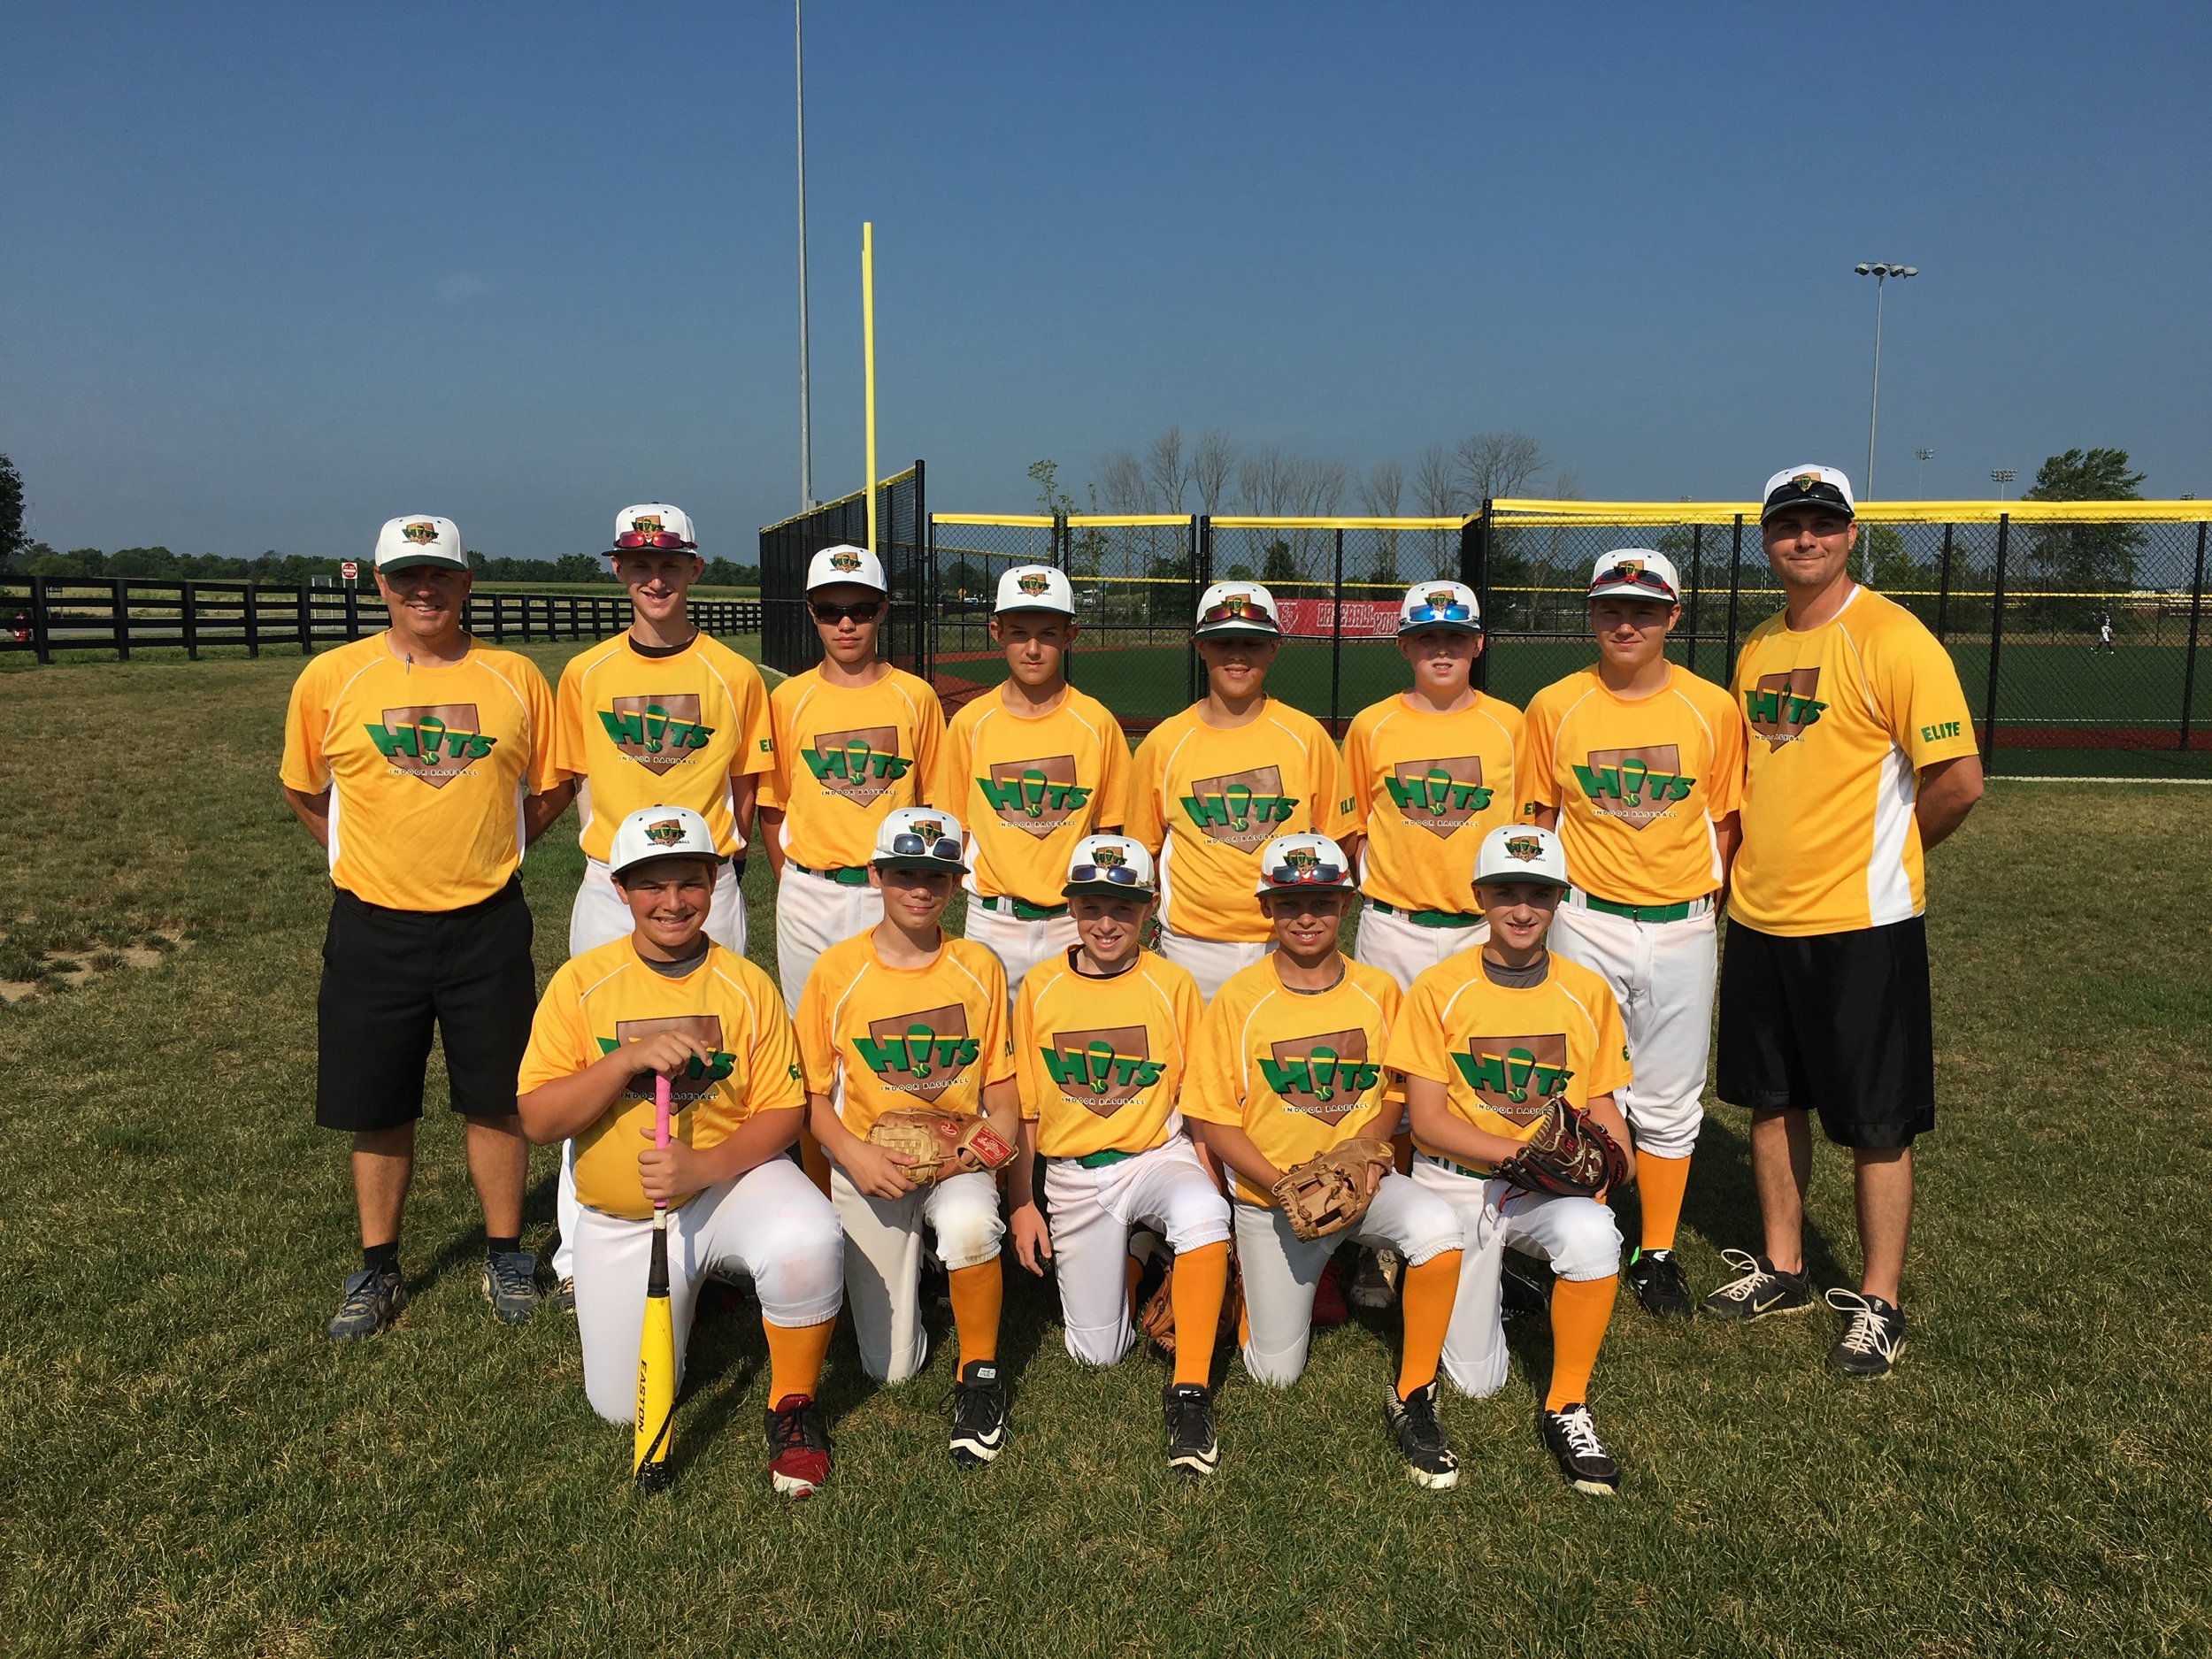 12U HITE ELITE preparing to begin competition at the BASEBALL YOUTH NATIONAL CHAMPOINSHIPS